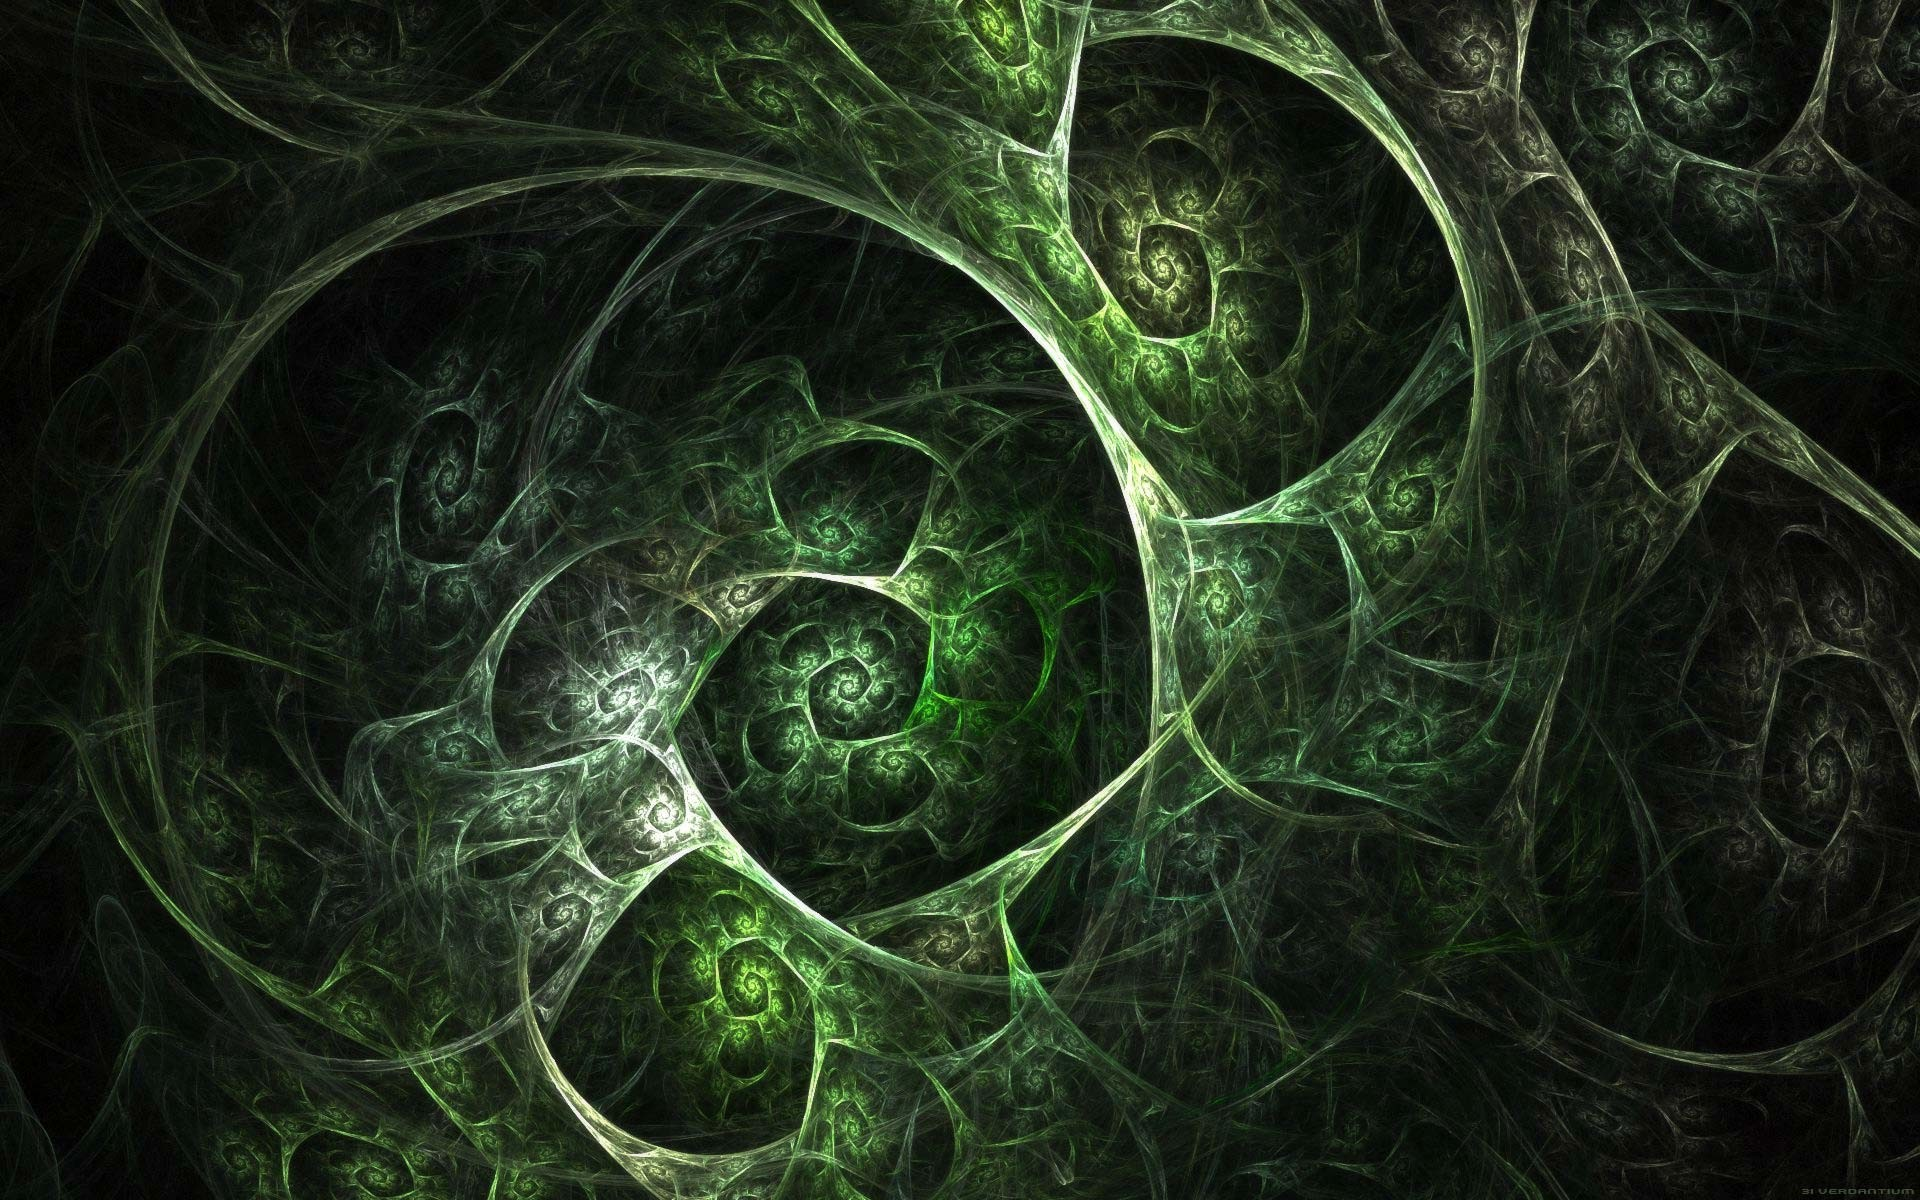 Res: 1920x1200, File: green-and-black-abstract-wallpaper-153.jpg by